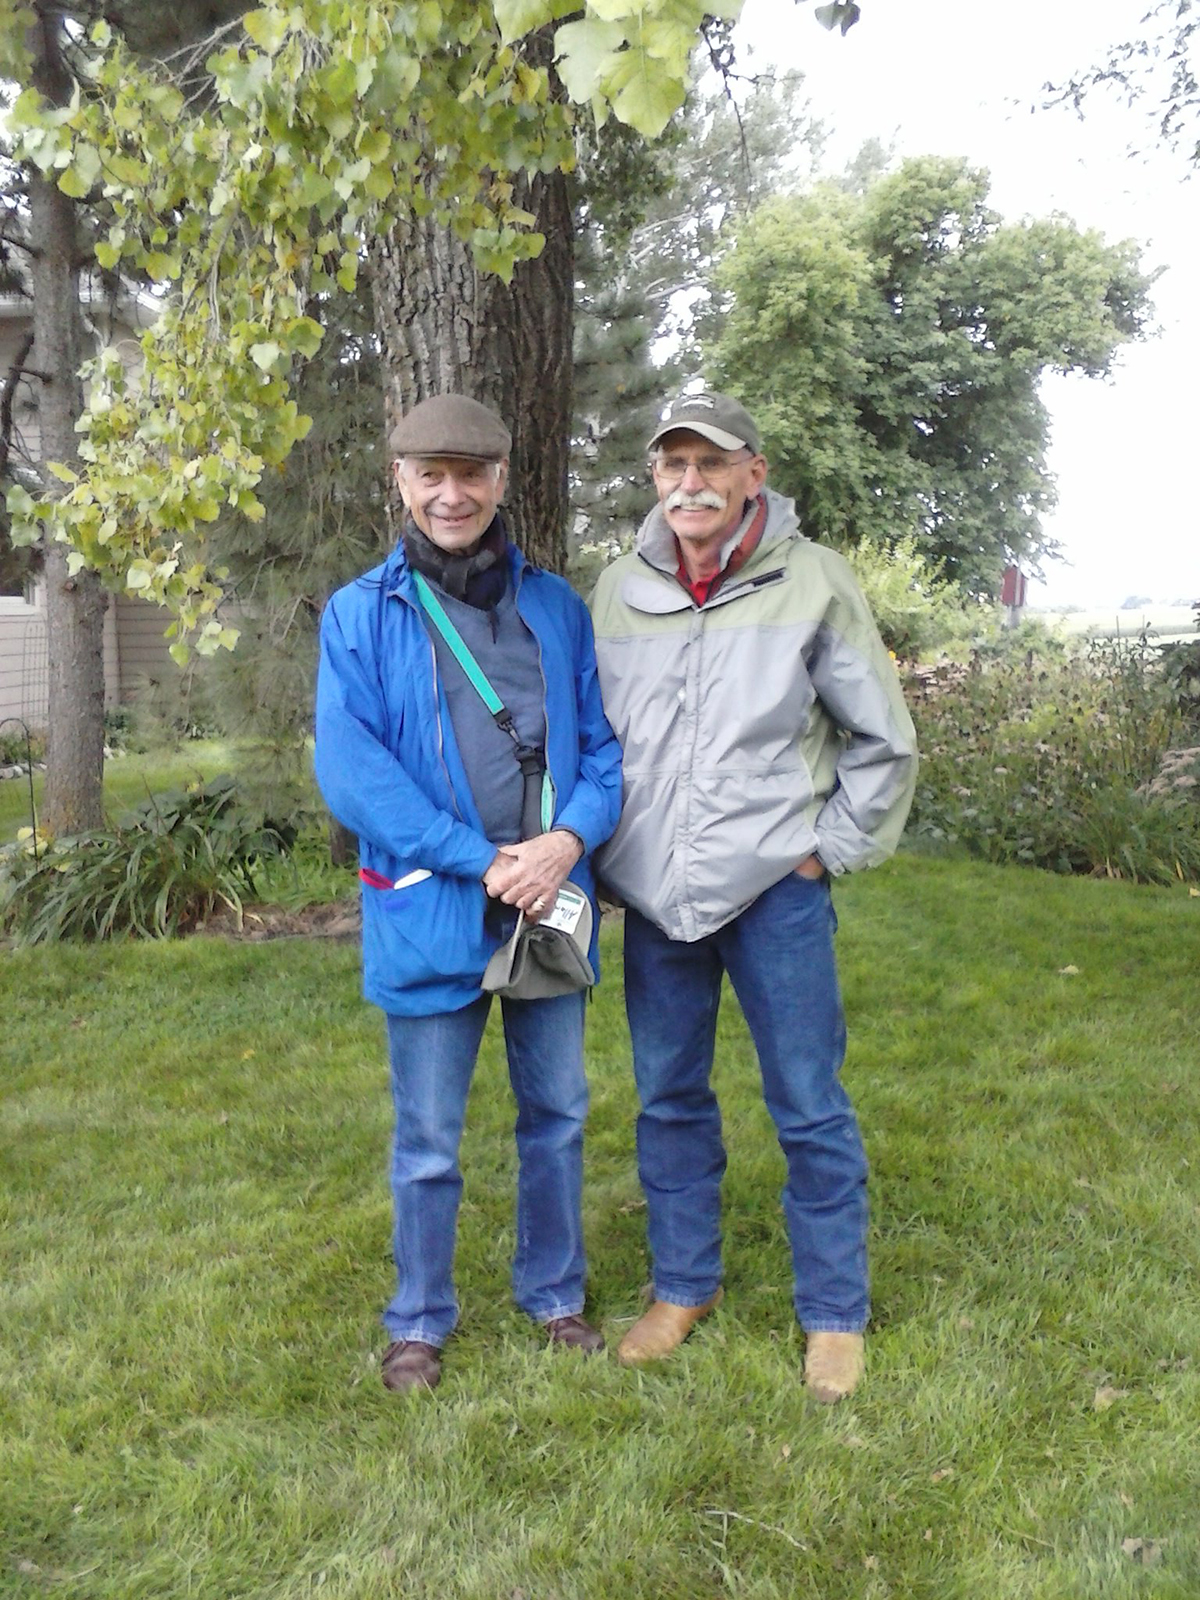 Allan Savory, left, visited Rick Smith, right, at Smith's farm in 2014, as part of a tour of farming operations practicing exemplary conservation agriculture. Savory, a world-renowned expert on grassland systems and holistic management, resides in South Africa. He was honored in 2010 as a recipient of the prestigious Buckminster Fuller Award for his work solving agricultural and land use problems. Photo courtesy the South Dakota Grasslands Coalition